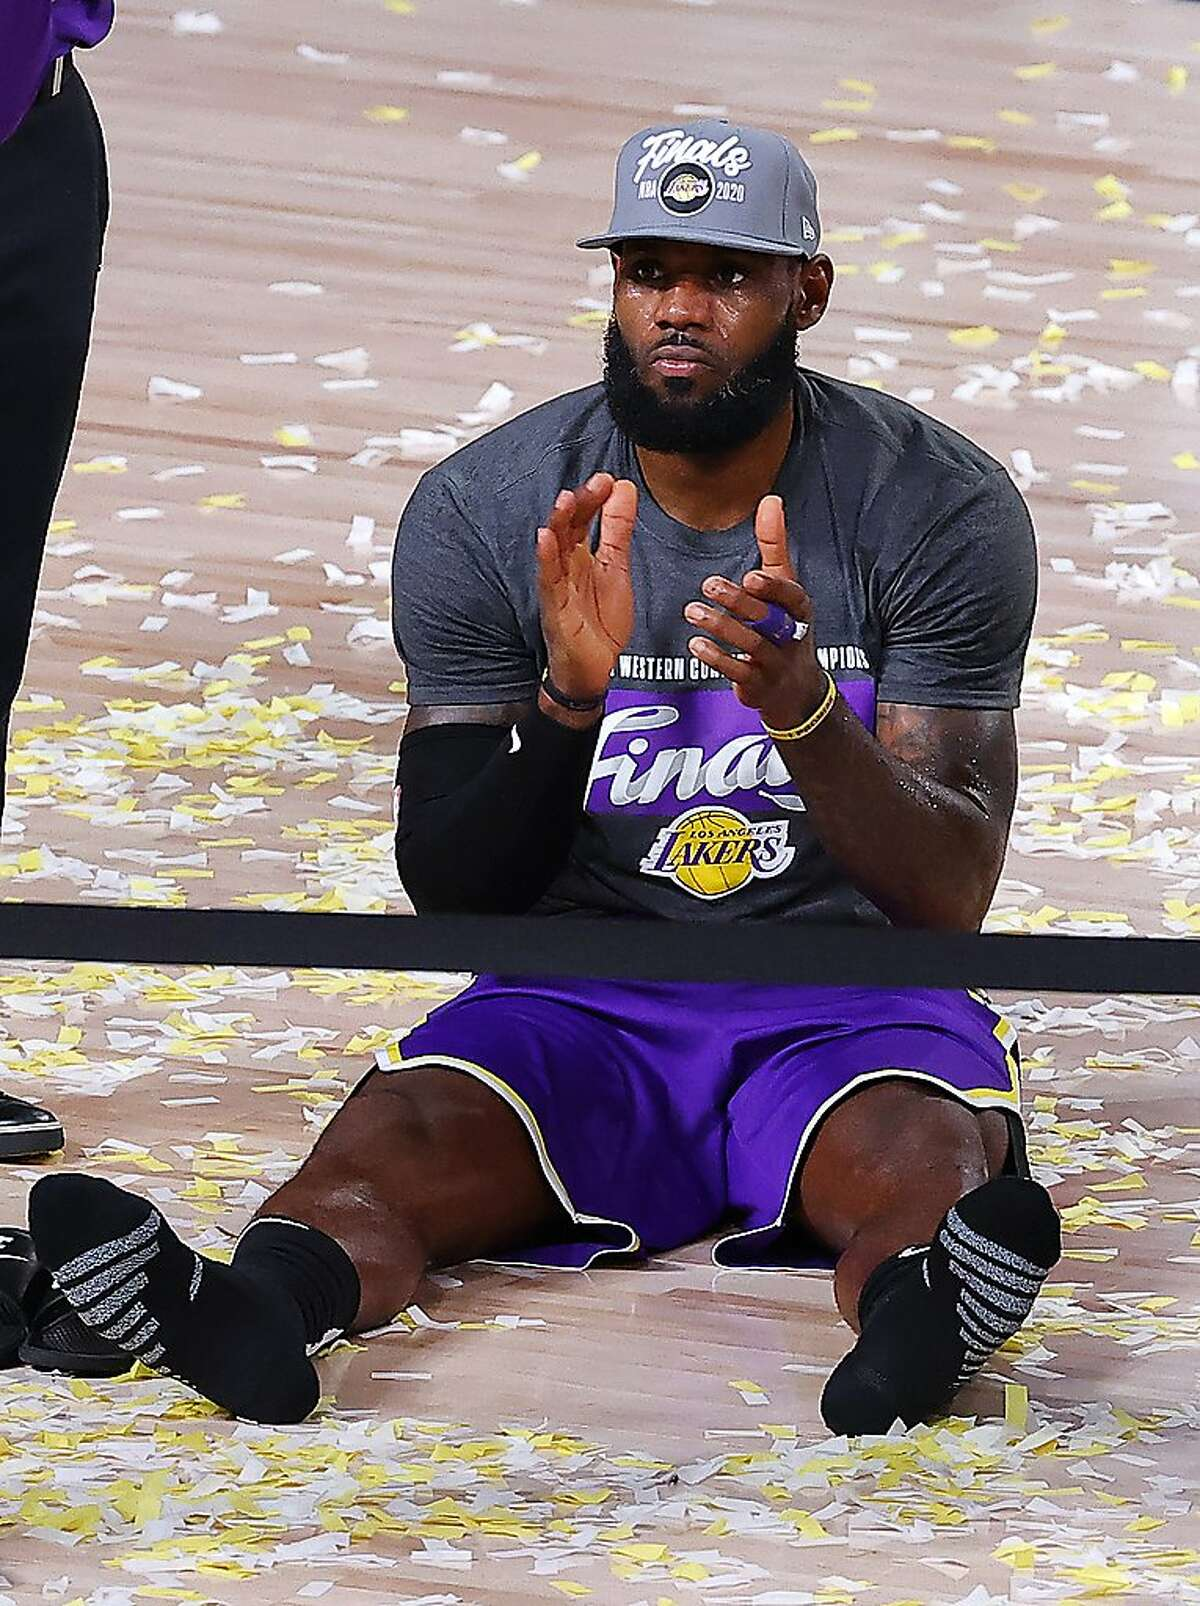 LeBron James has a seat among the confetti after the Lakers eliminated the Nuggets in the Western Conference finals.